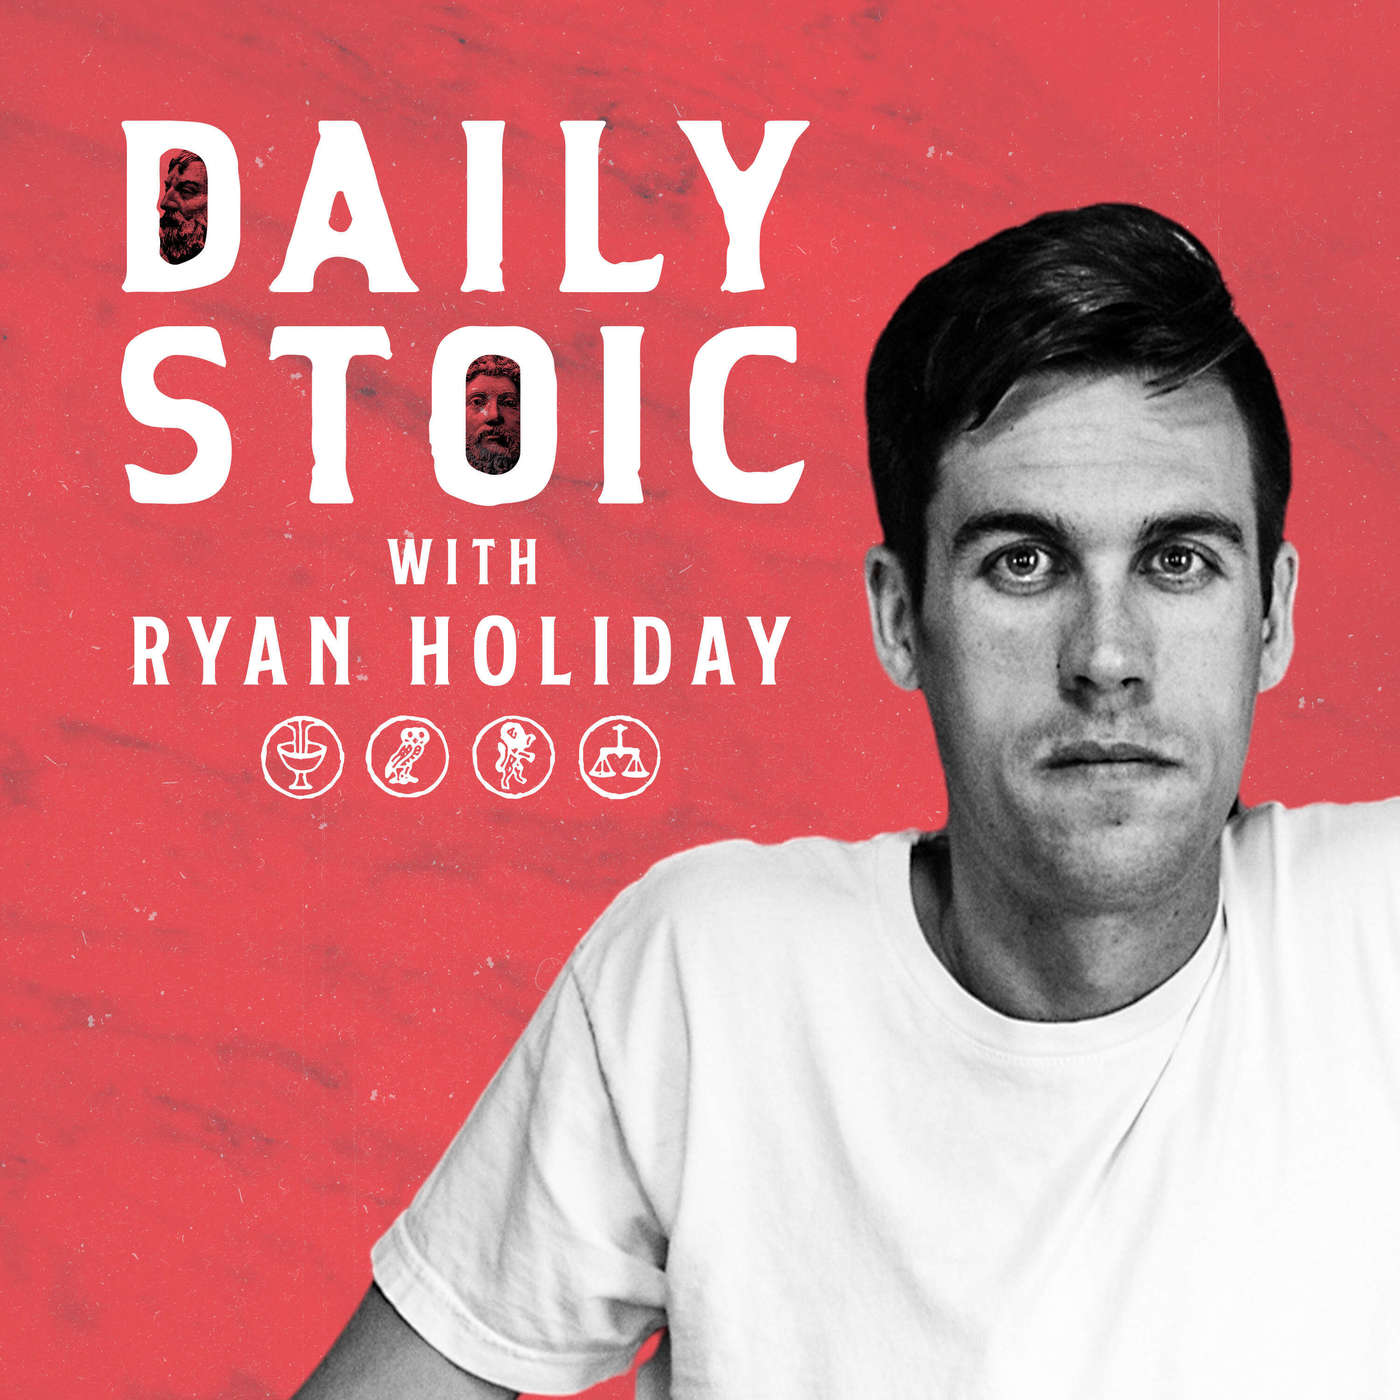 The Daily Stoic podcast